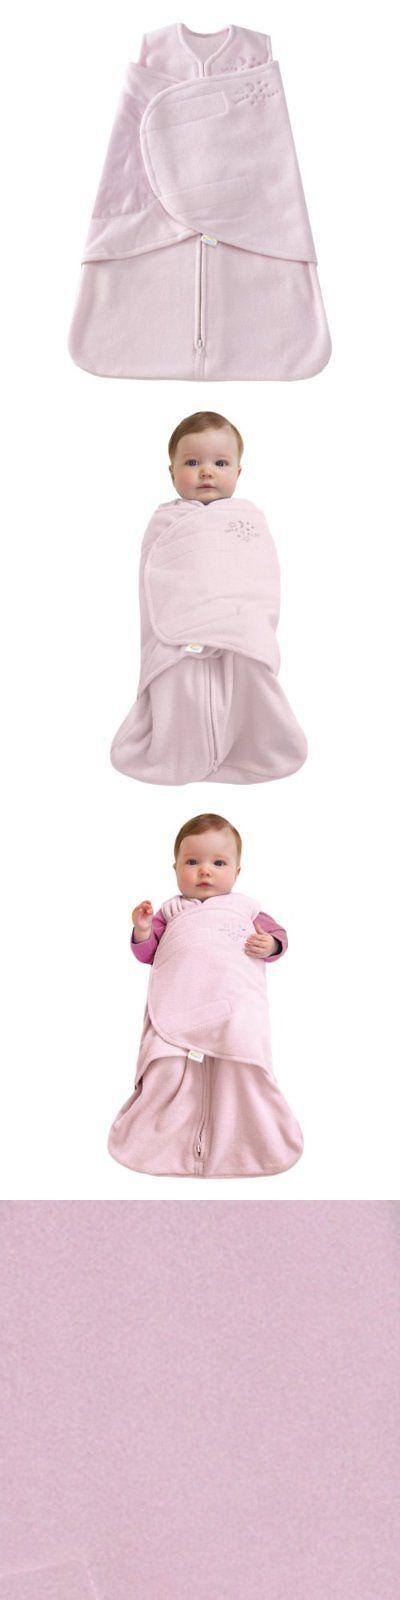 Sleeping Bags and Sleepsacks 100989: Halo Sleepsack Micro-Fleece Swaddle Soft Pink Small -> BUY IT NOW ONLY: $31.96 on eBay!